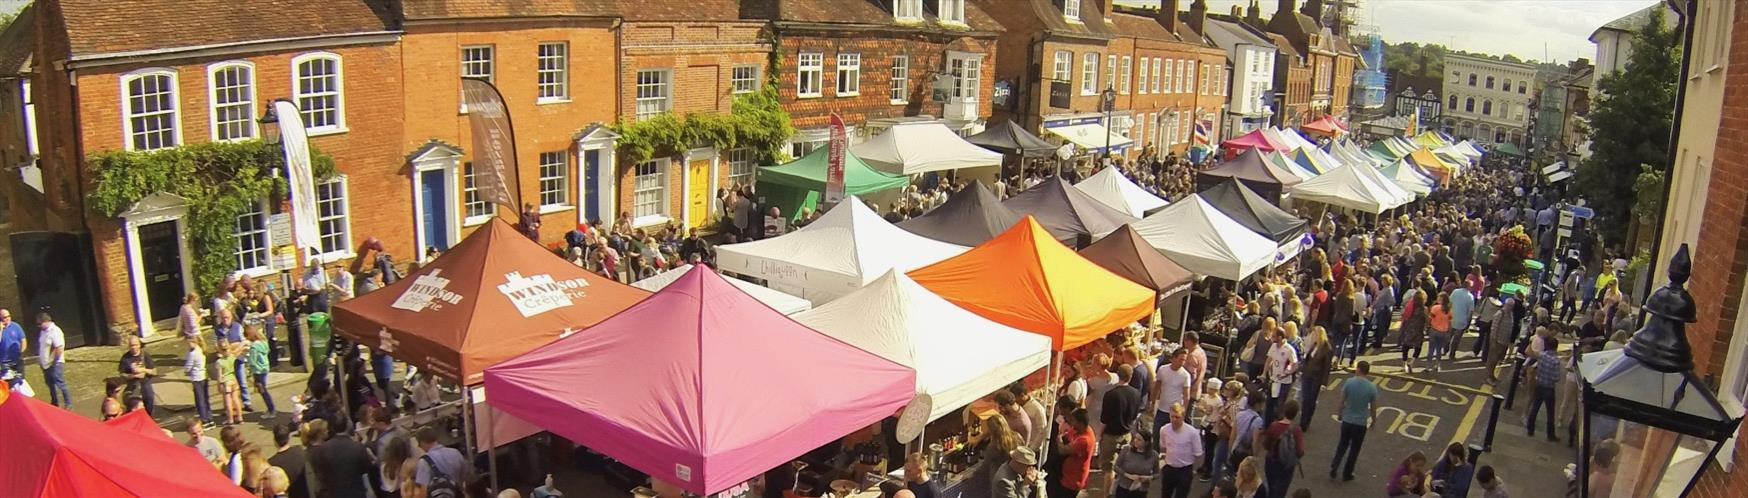 Farnham's Annual Food Festival